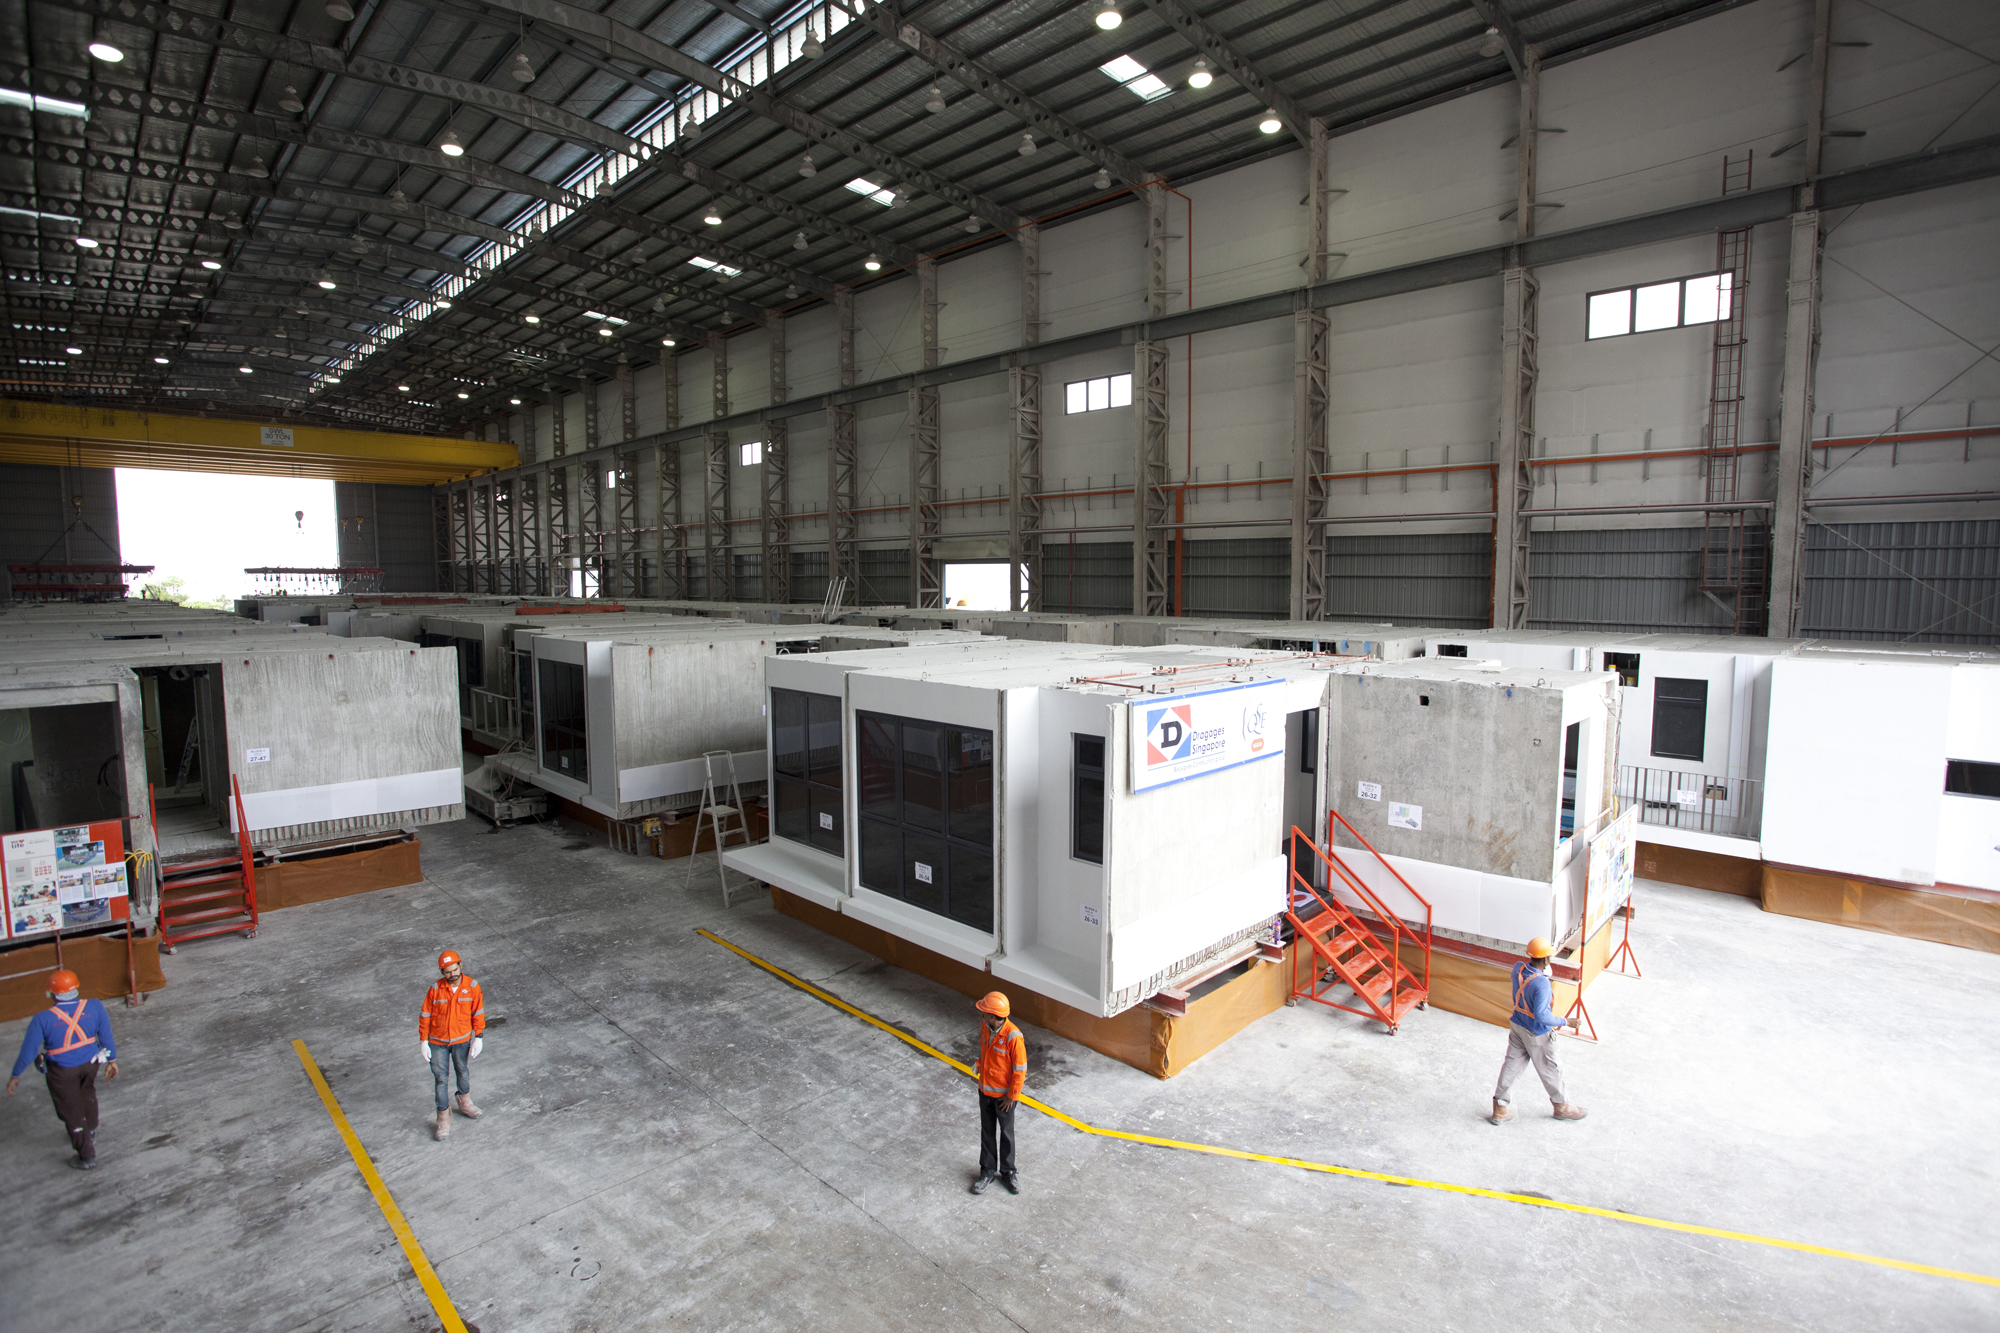 Dragages Singapore: 'Game-changer' in modular construction